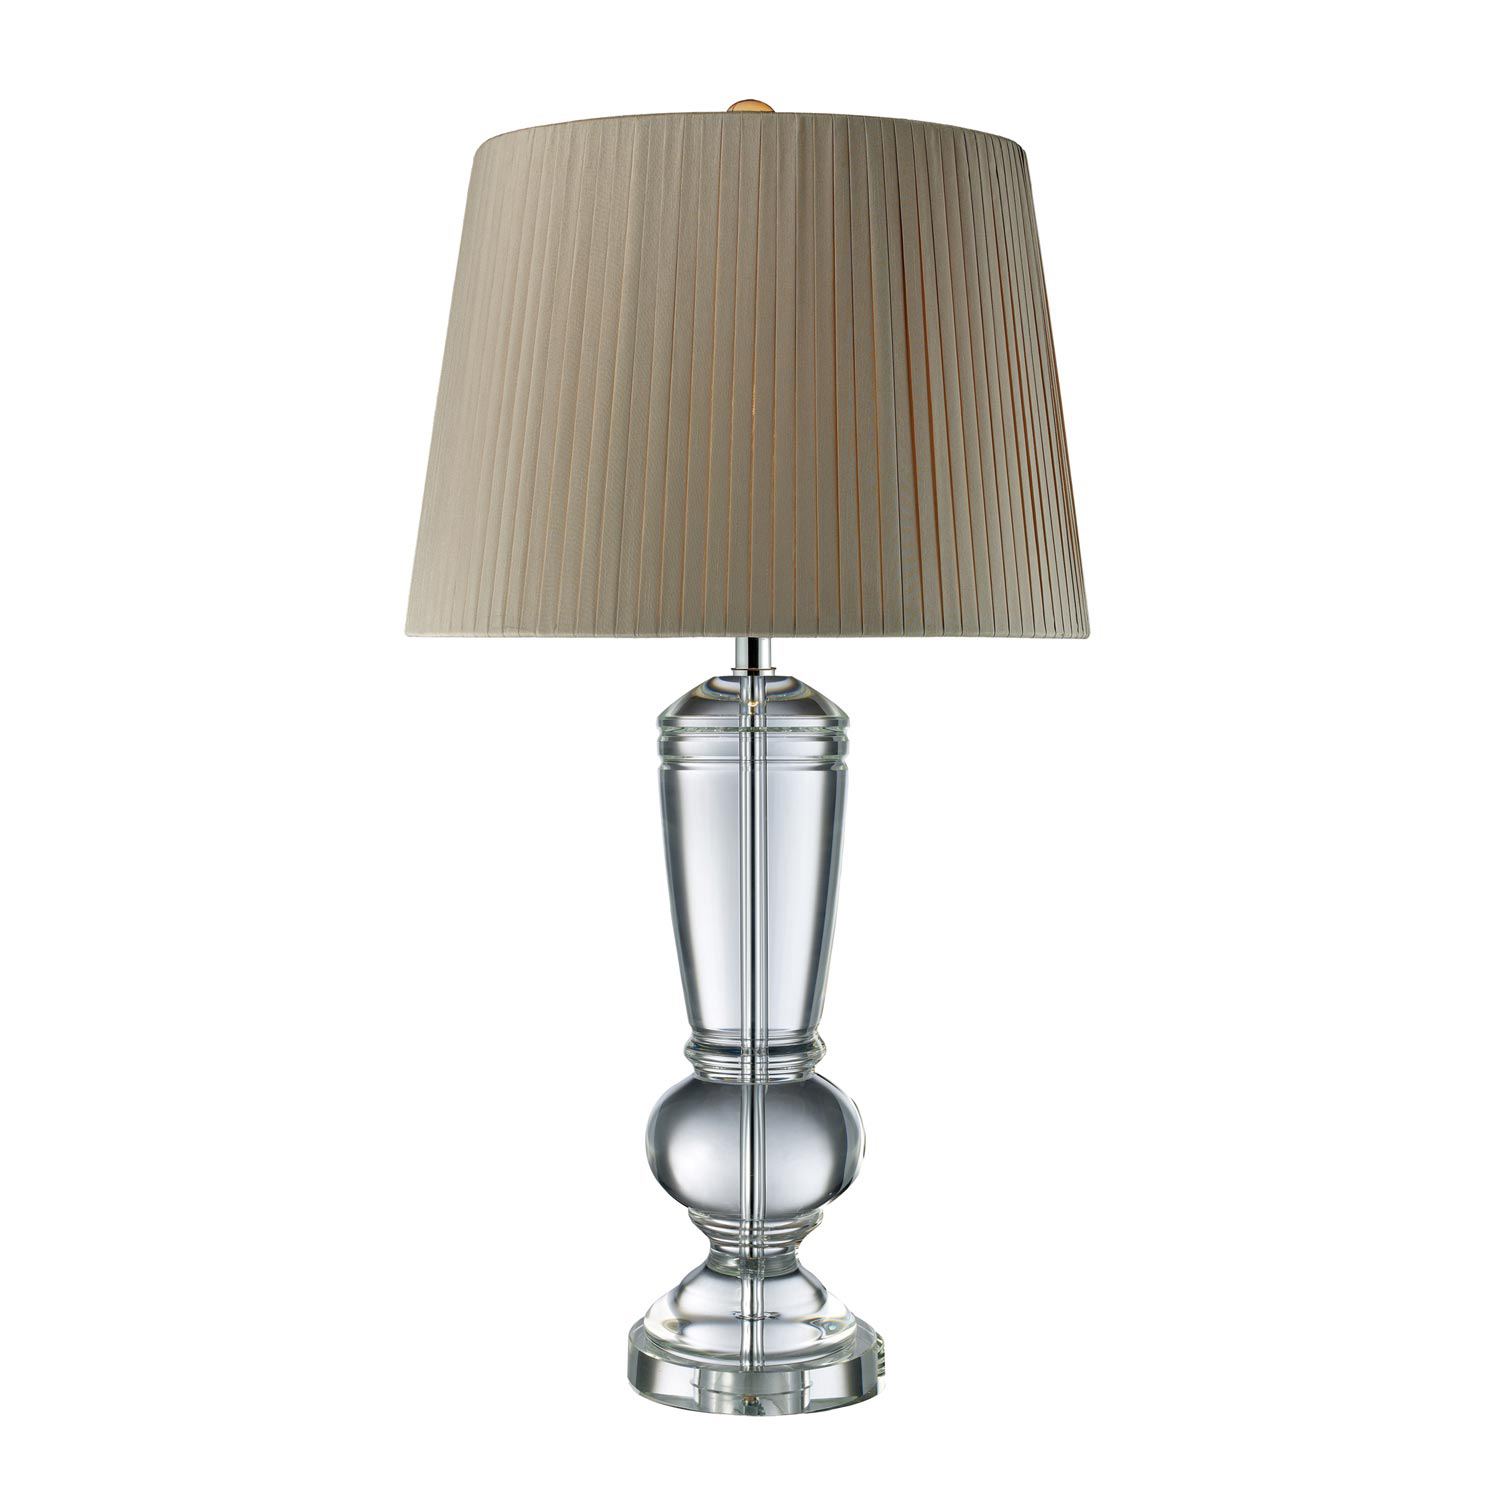 Elk Lighting D1811 Castlebridge Table Lamp - Clear Crystal